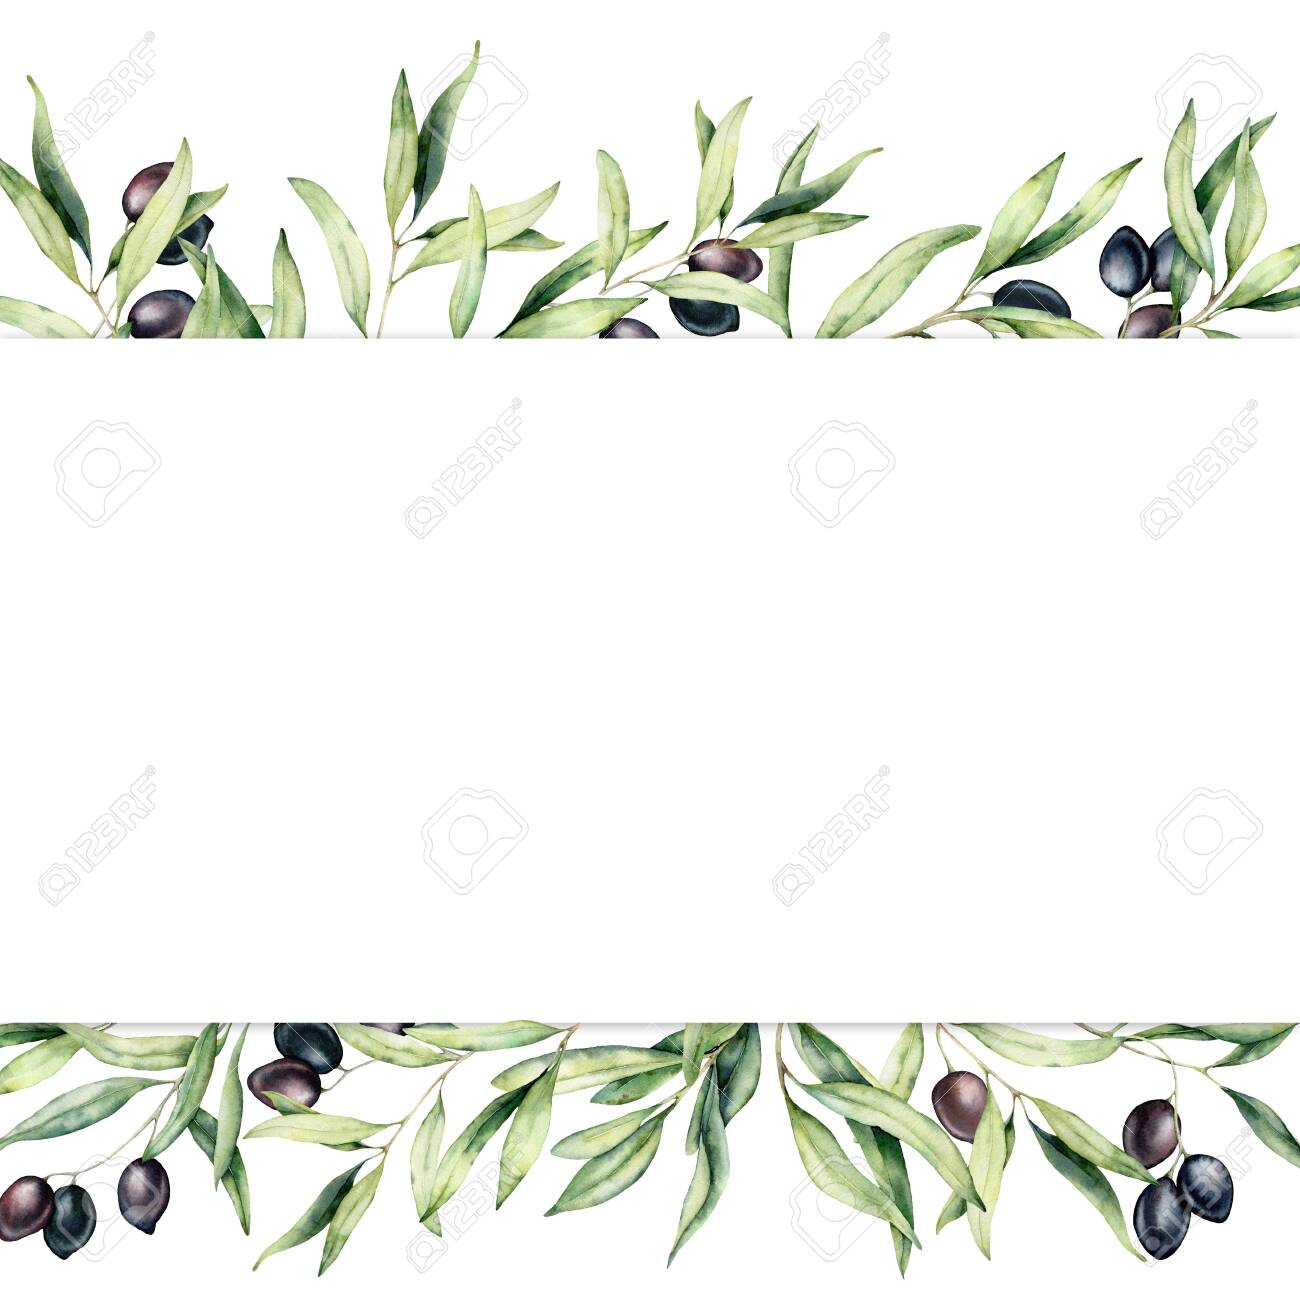 Watercolor border with black olive berries and branch. Hand painted botanical banner with olives isolated on white background. Floral illustration for design, print, fabric or background. - 128613335